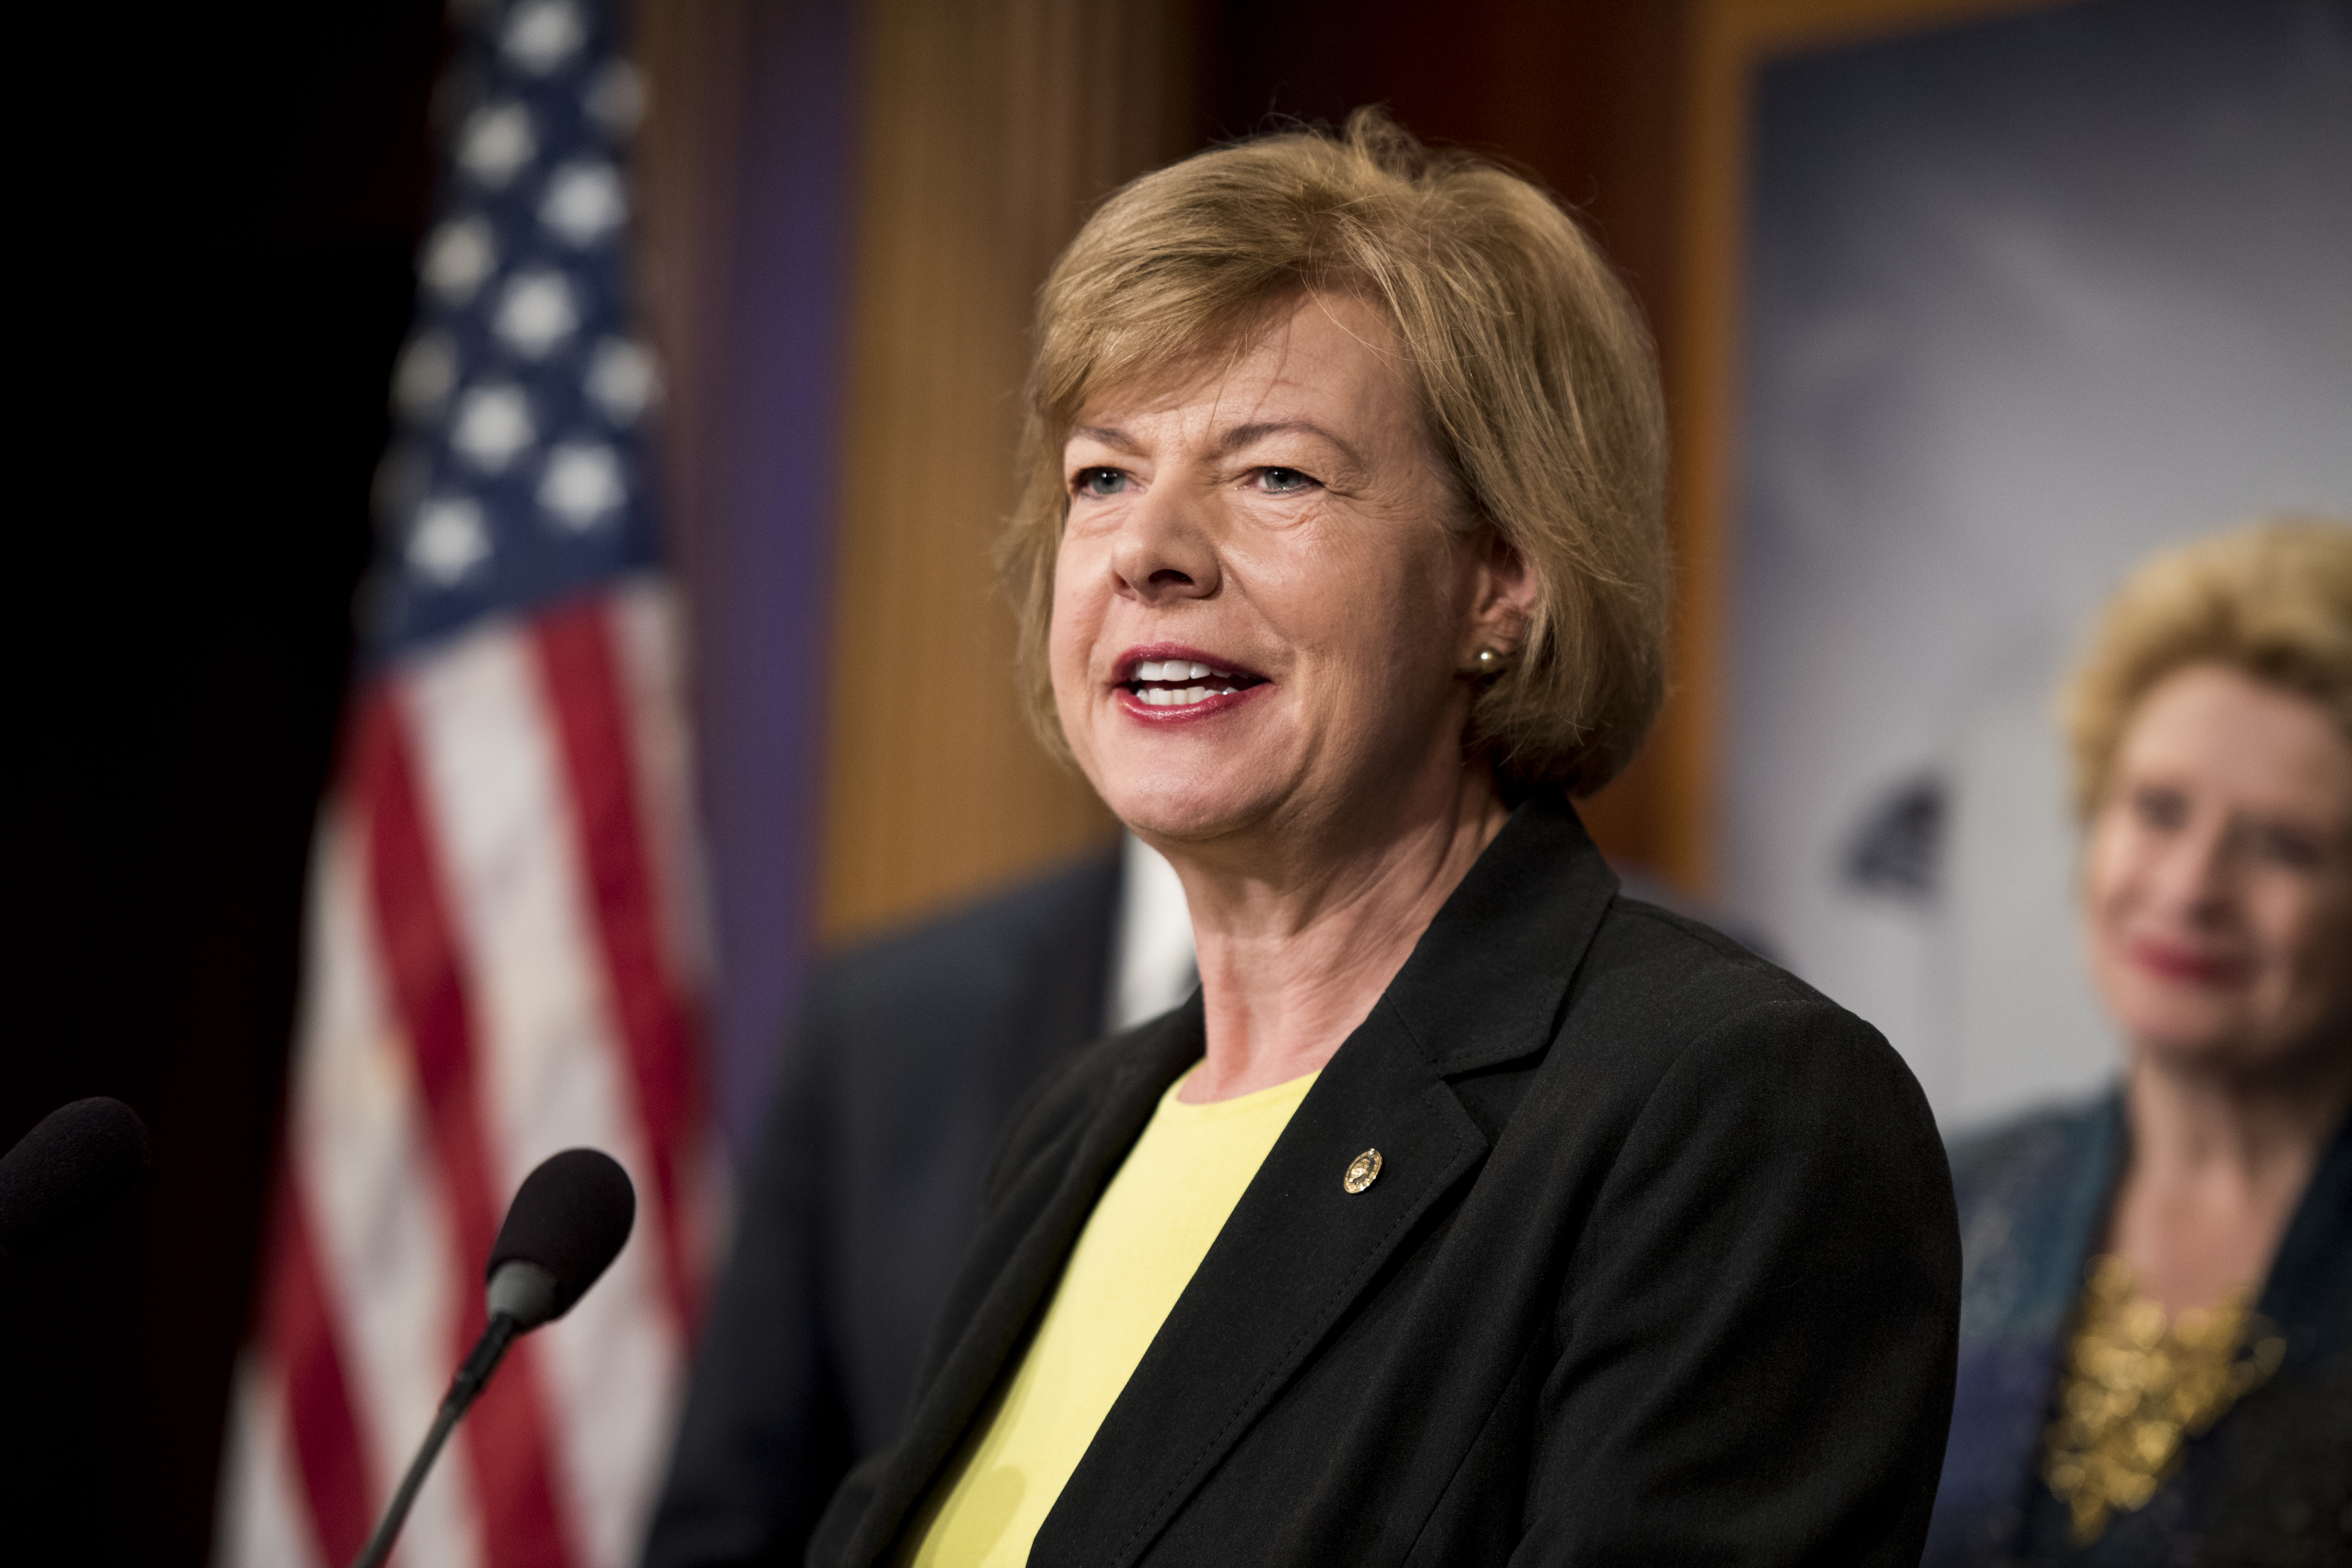 Sen. Tammy Baldwin, D-Wisc., during a news conference to discuss on April 25, 2017.